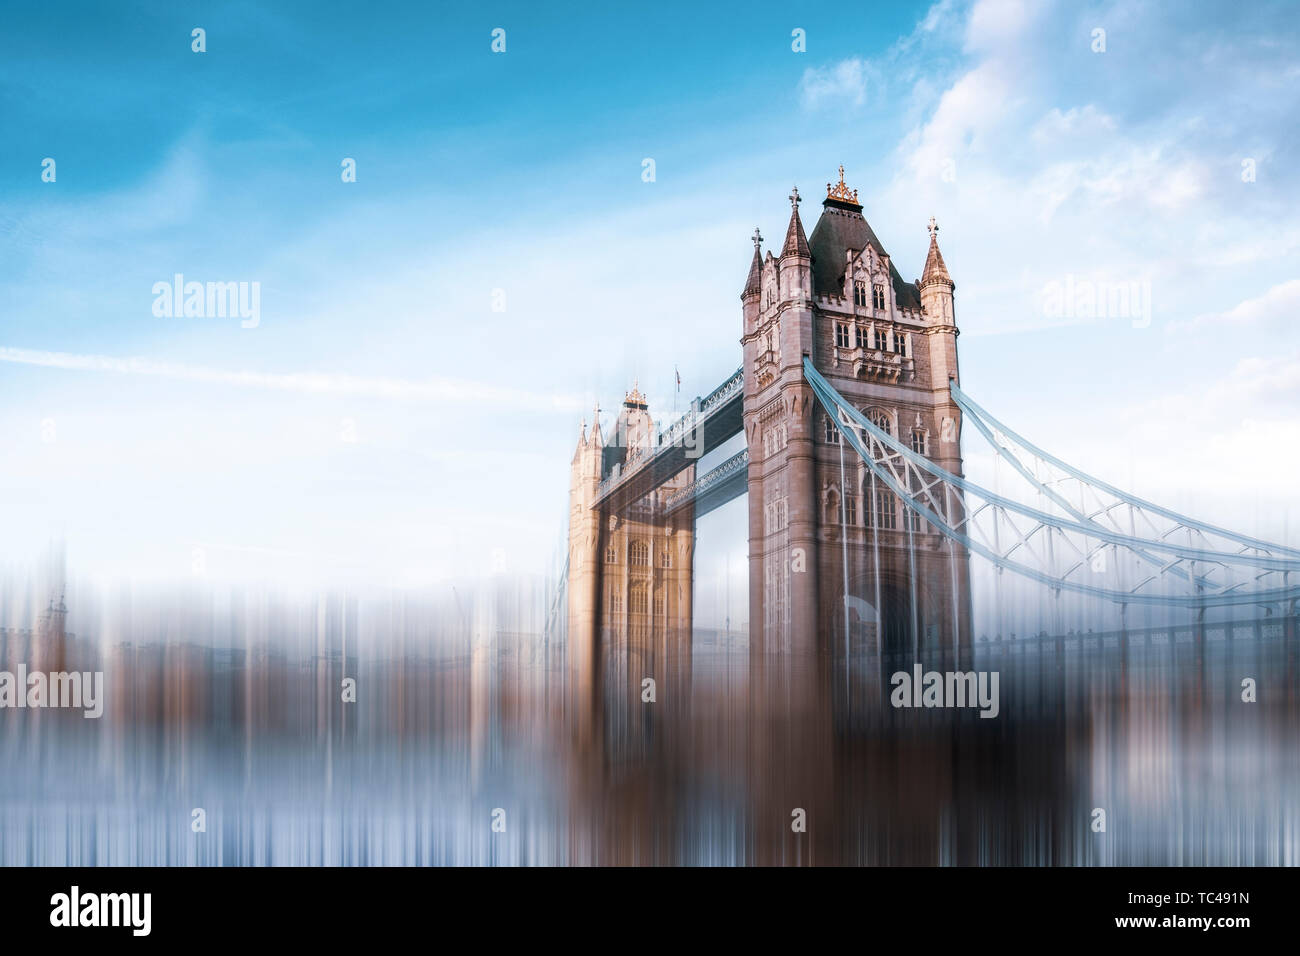 Tower Bridge, one of London's famous bridges and one of many must-see landmarks in London. Blurry speed effect applied to suggest a fast-paced environ - Stock Image